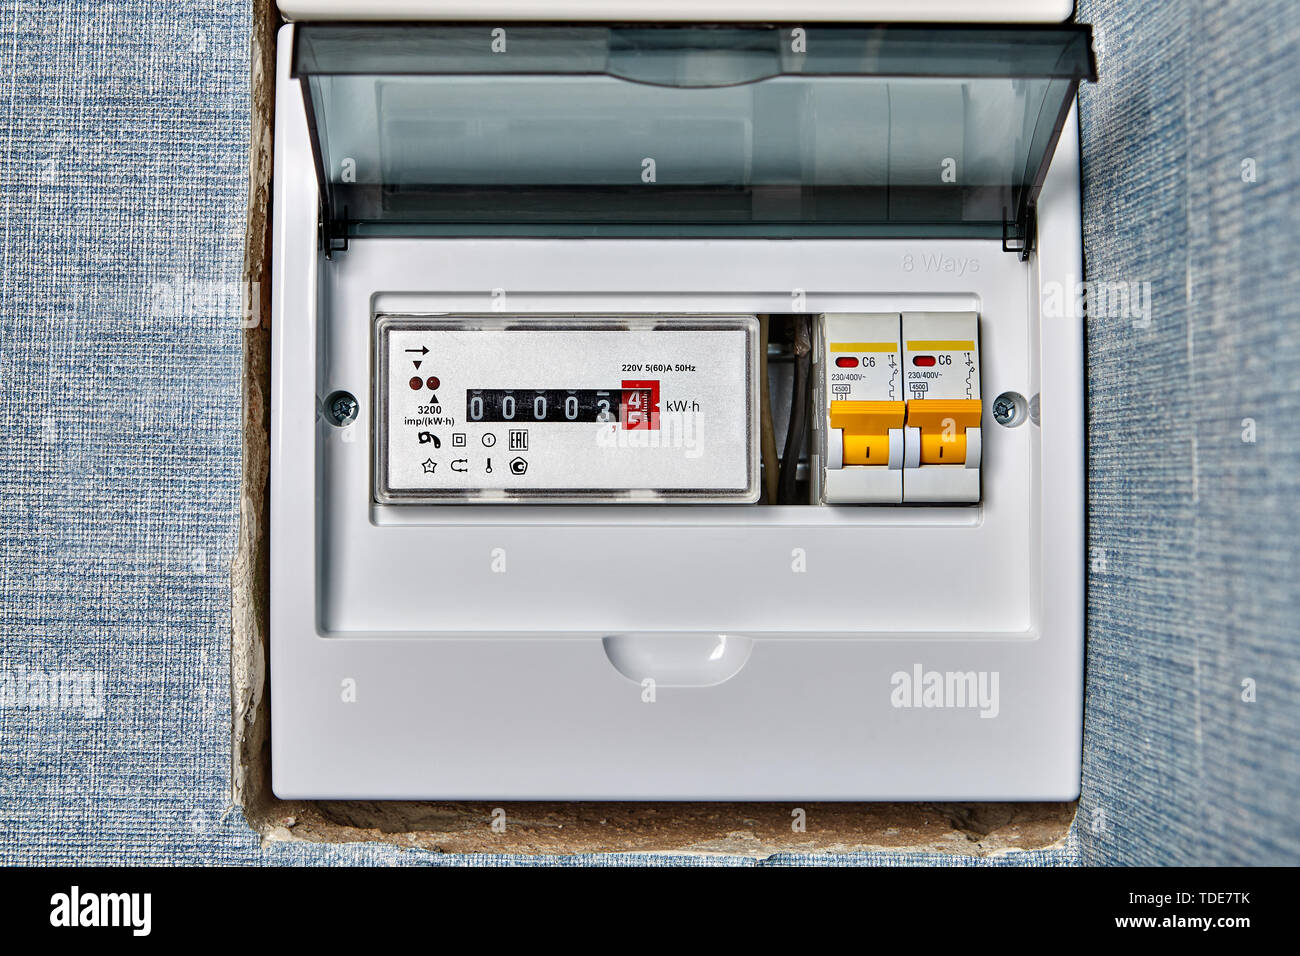 Electricity Meter Stock Photos & Electricity Meter Stock